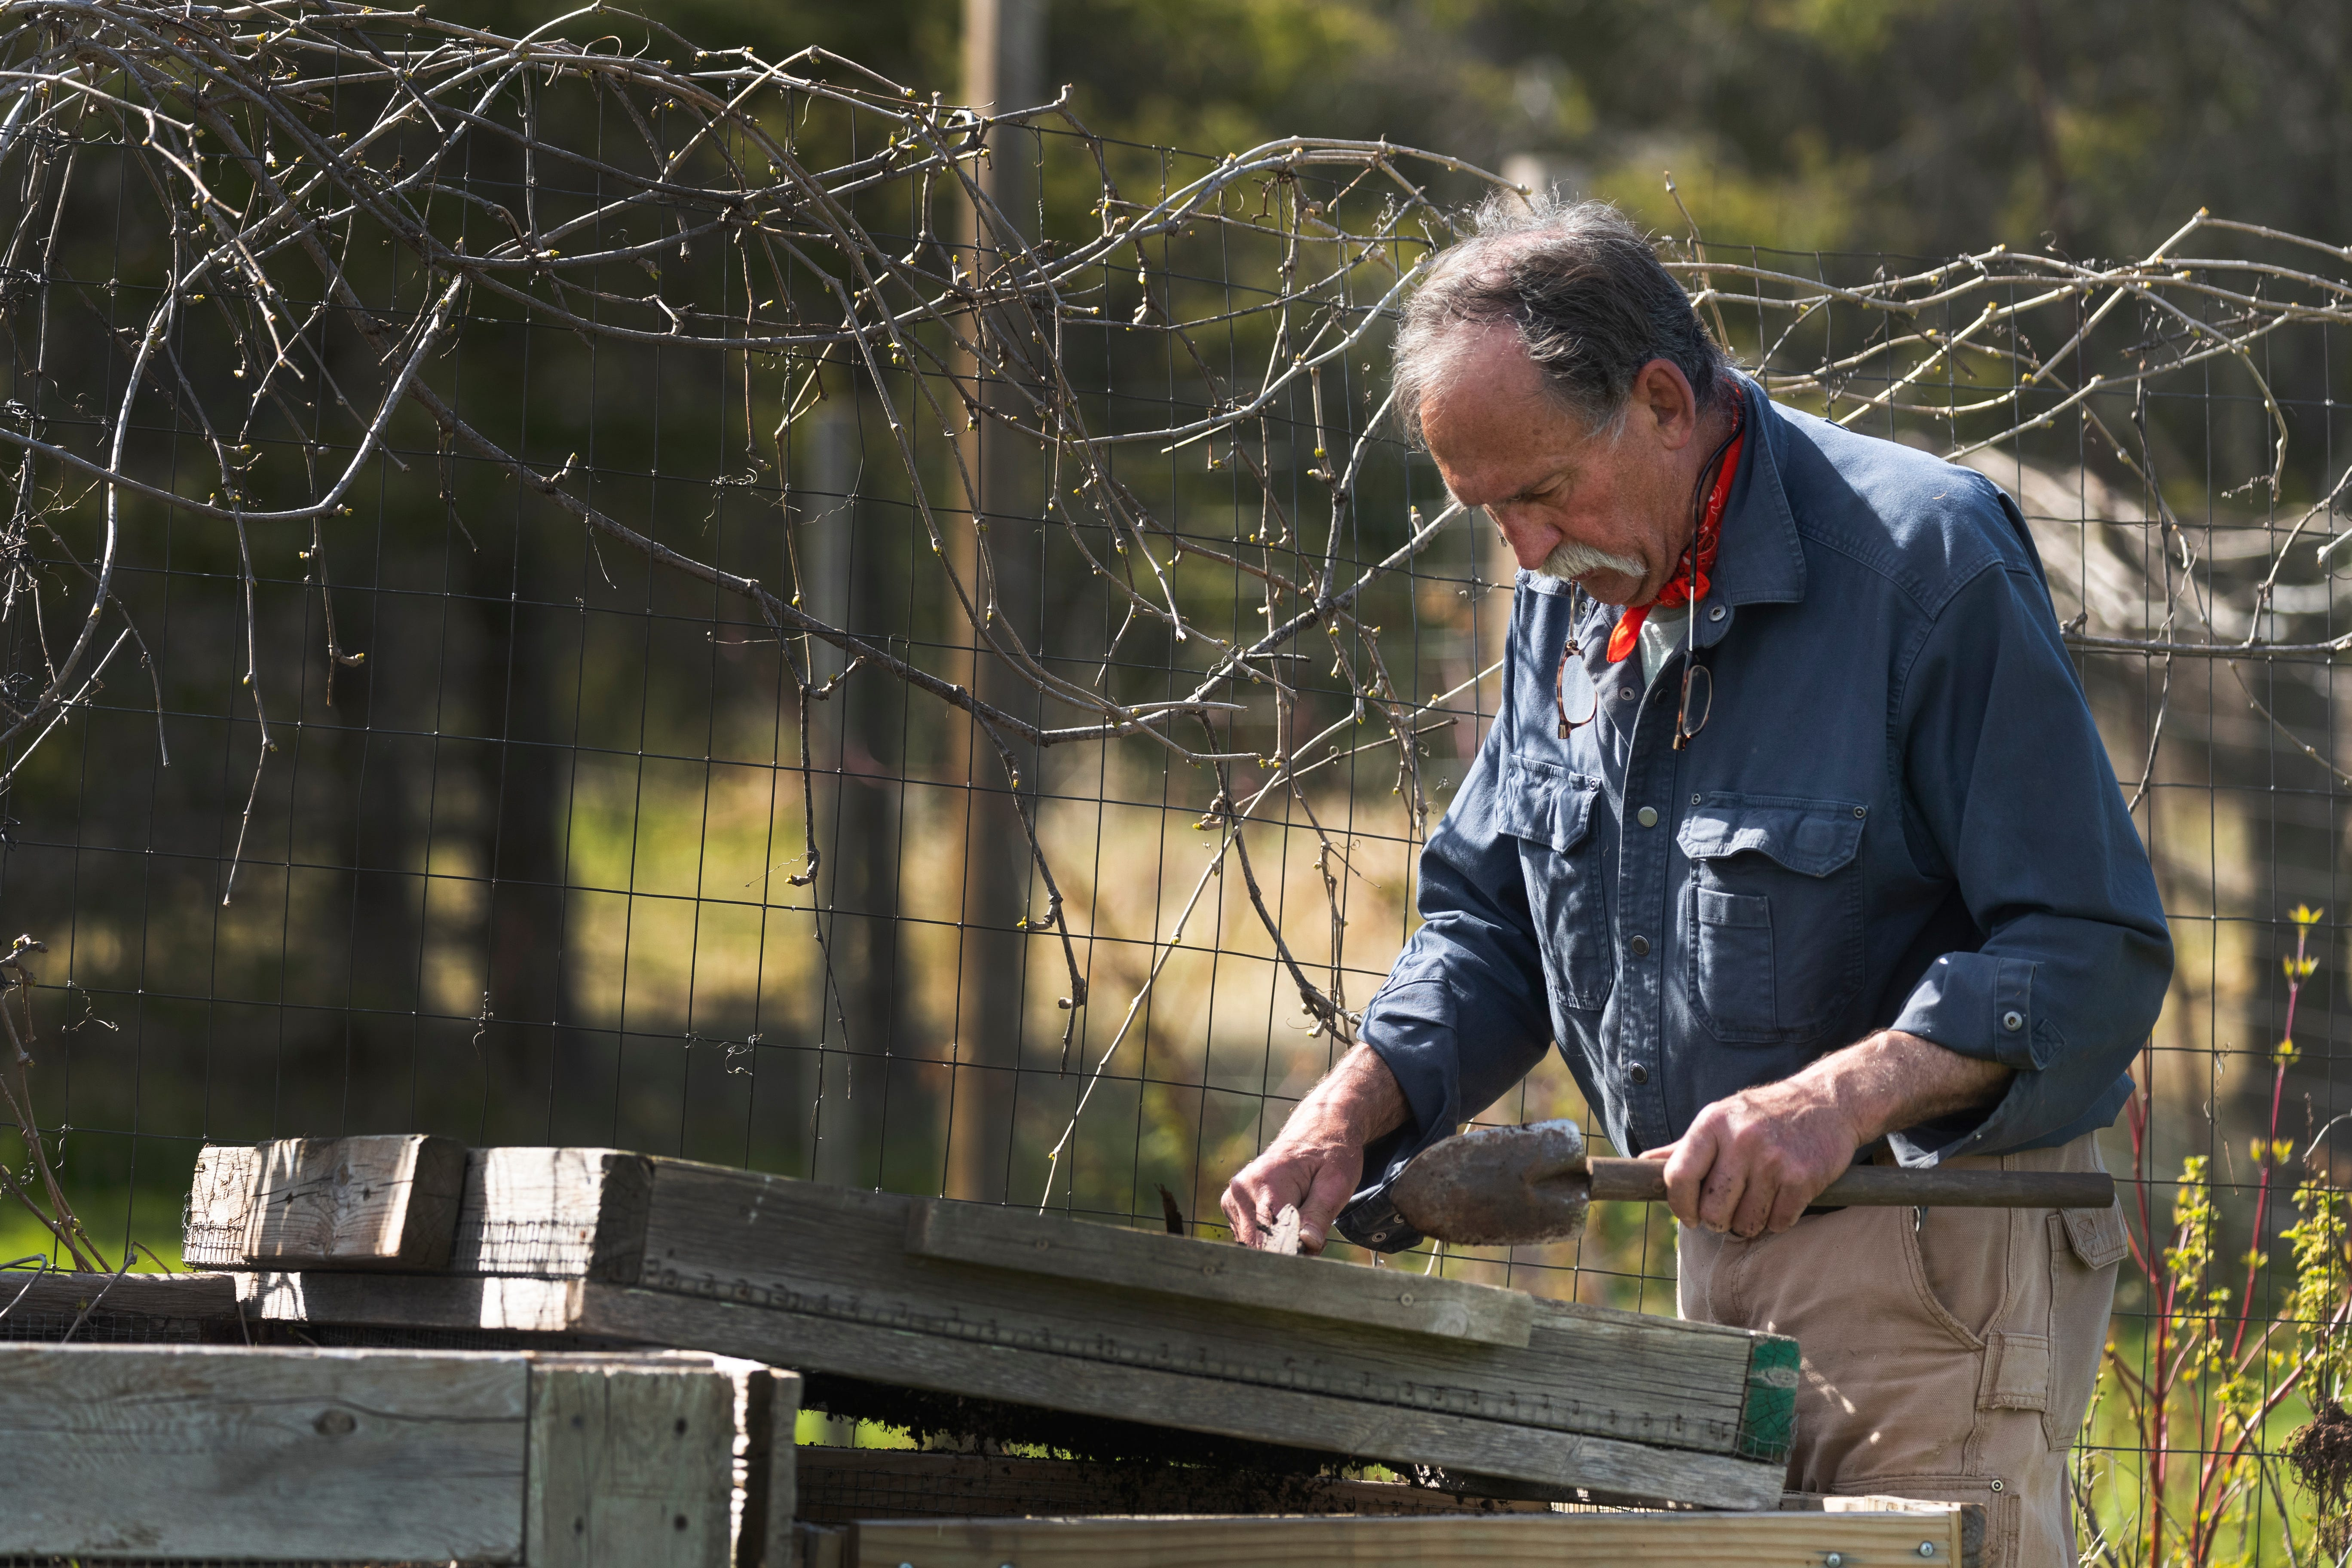 Michael Spencer tends to his garden at his home in the Town of Cloverland in Douglas County. He spearheaded the campaign to subsidize the cost of bringing fiber-optic cable to the area.